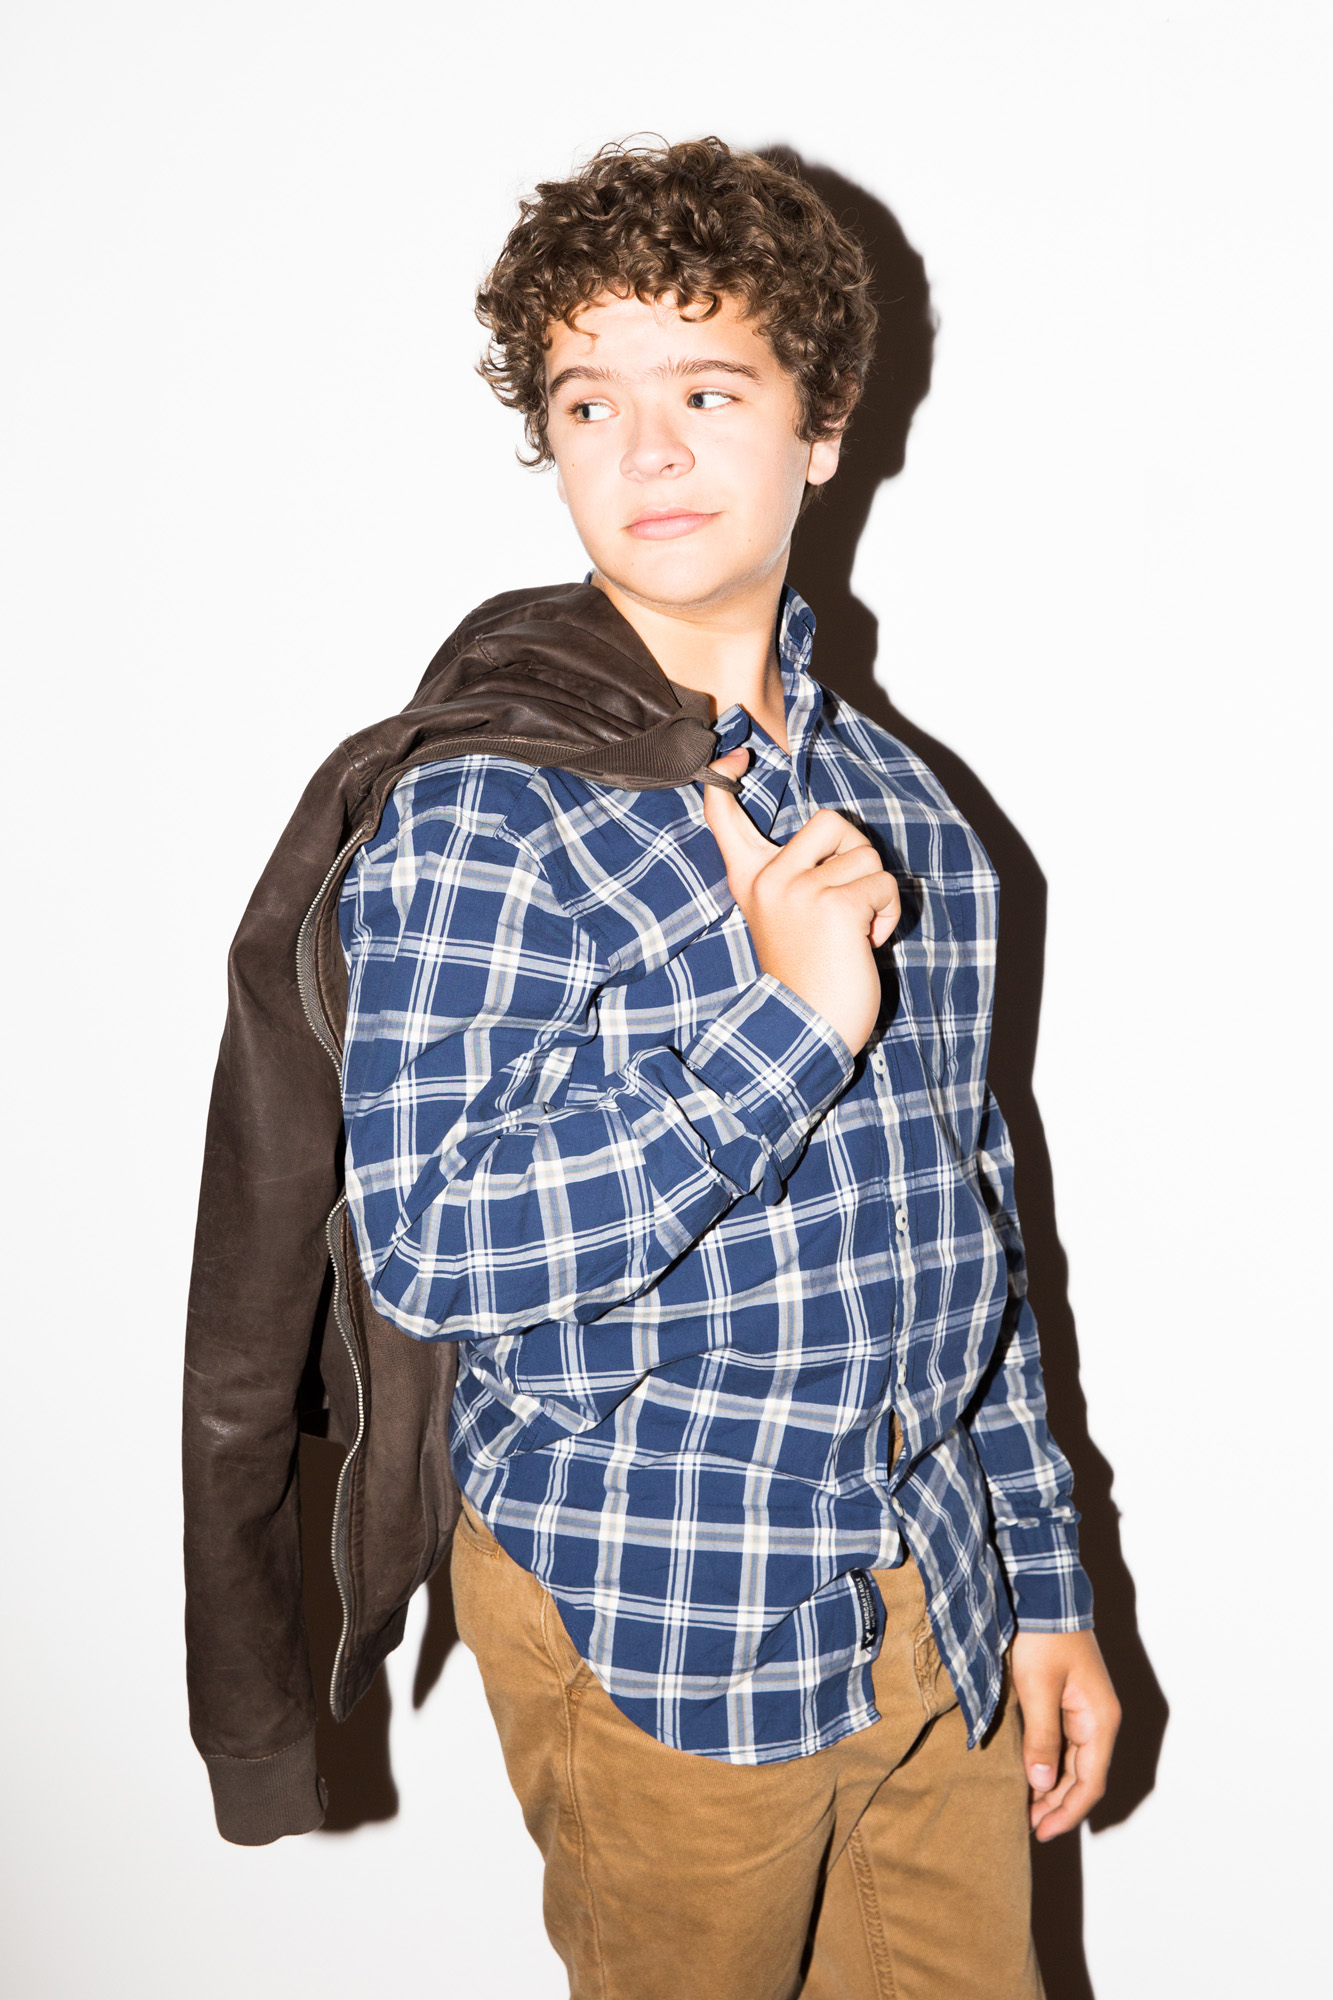 Gaten Matarazzo Tells Us the Crazy Connection Between Stranger Things and Harry Potter